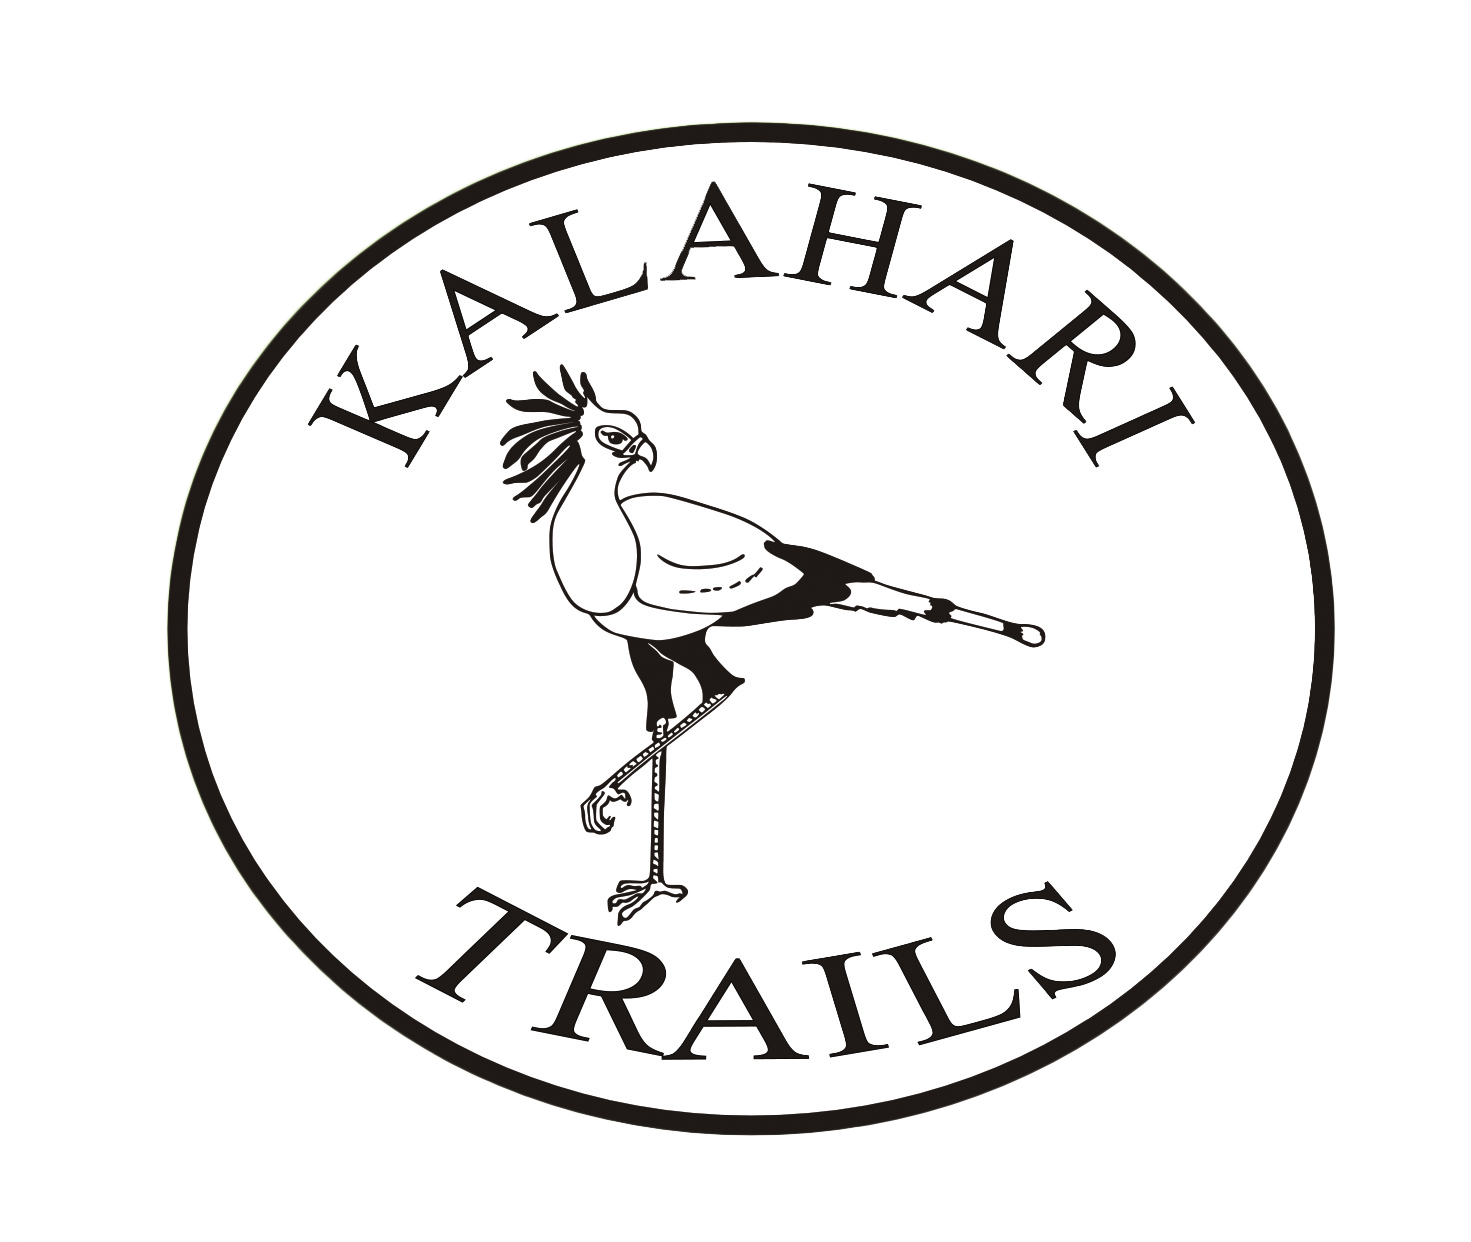 kalahari-trails